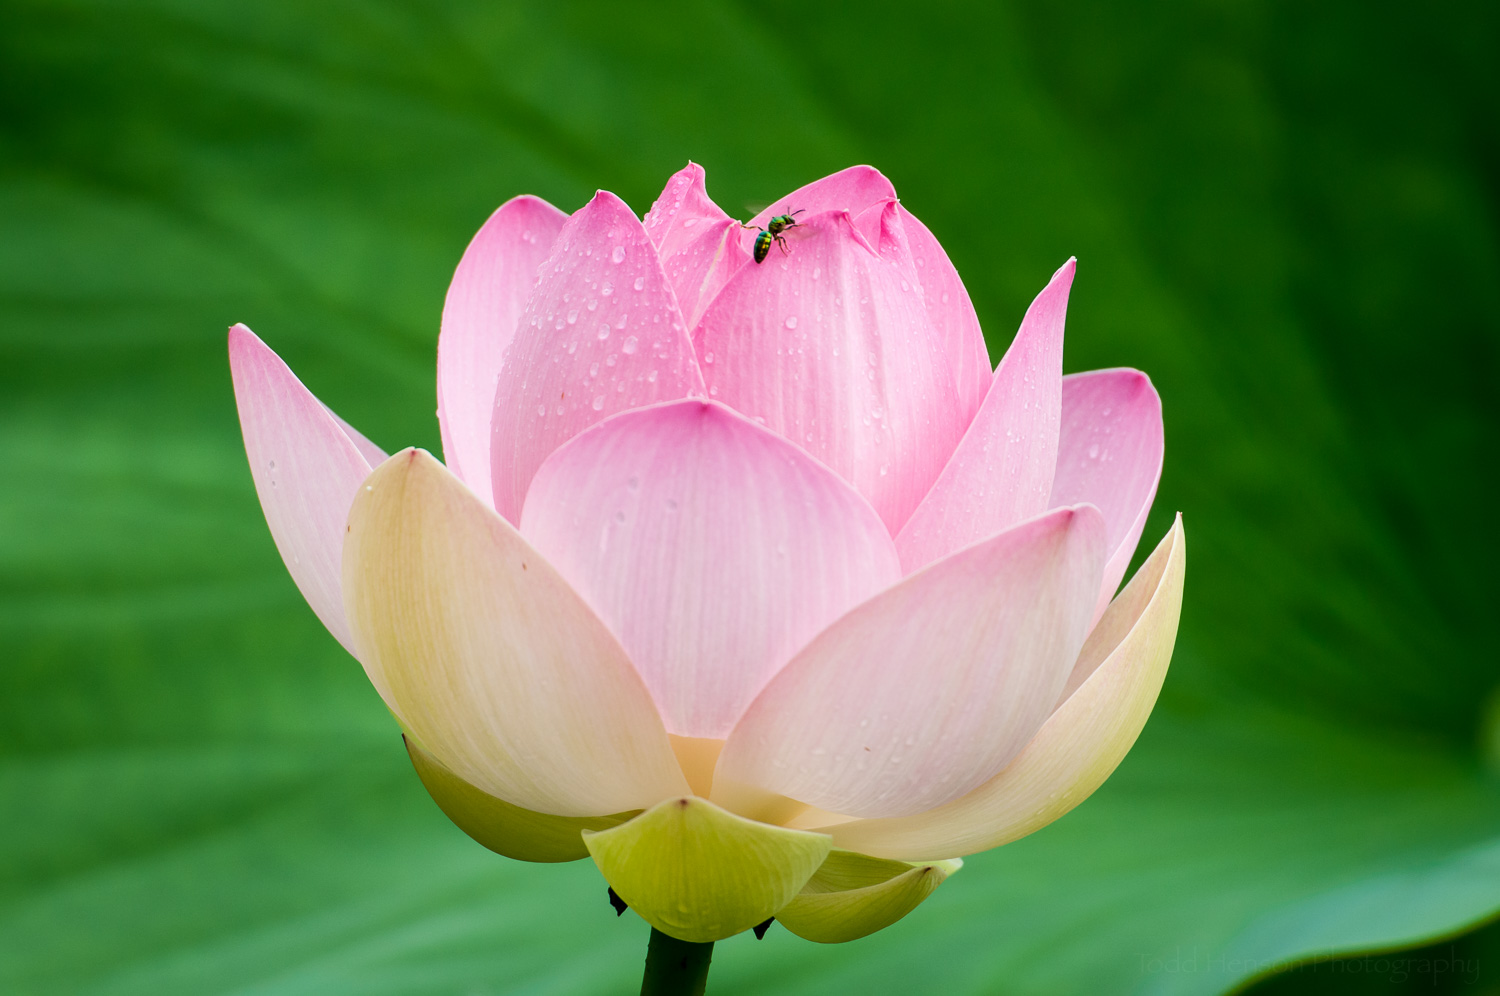 Small green insect on lotus blossom